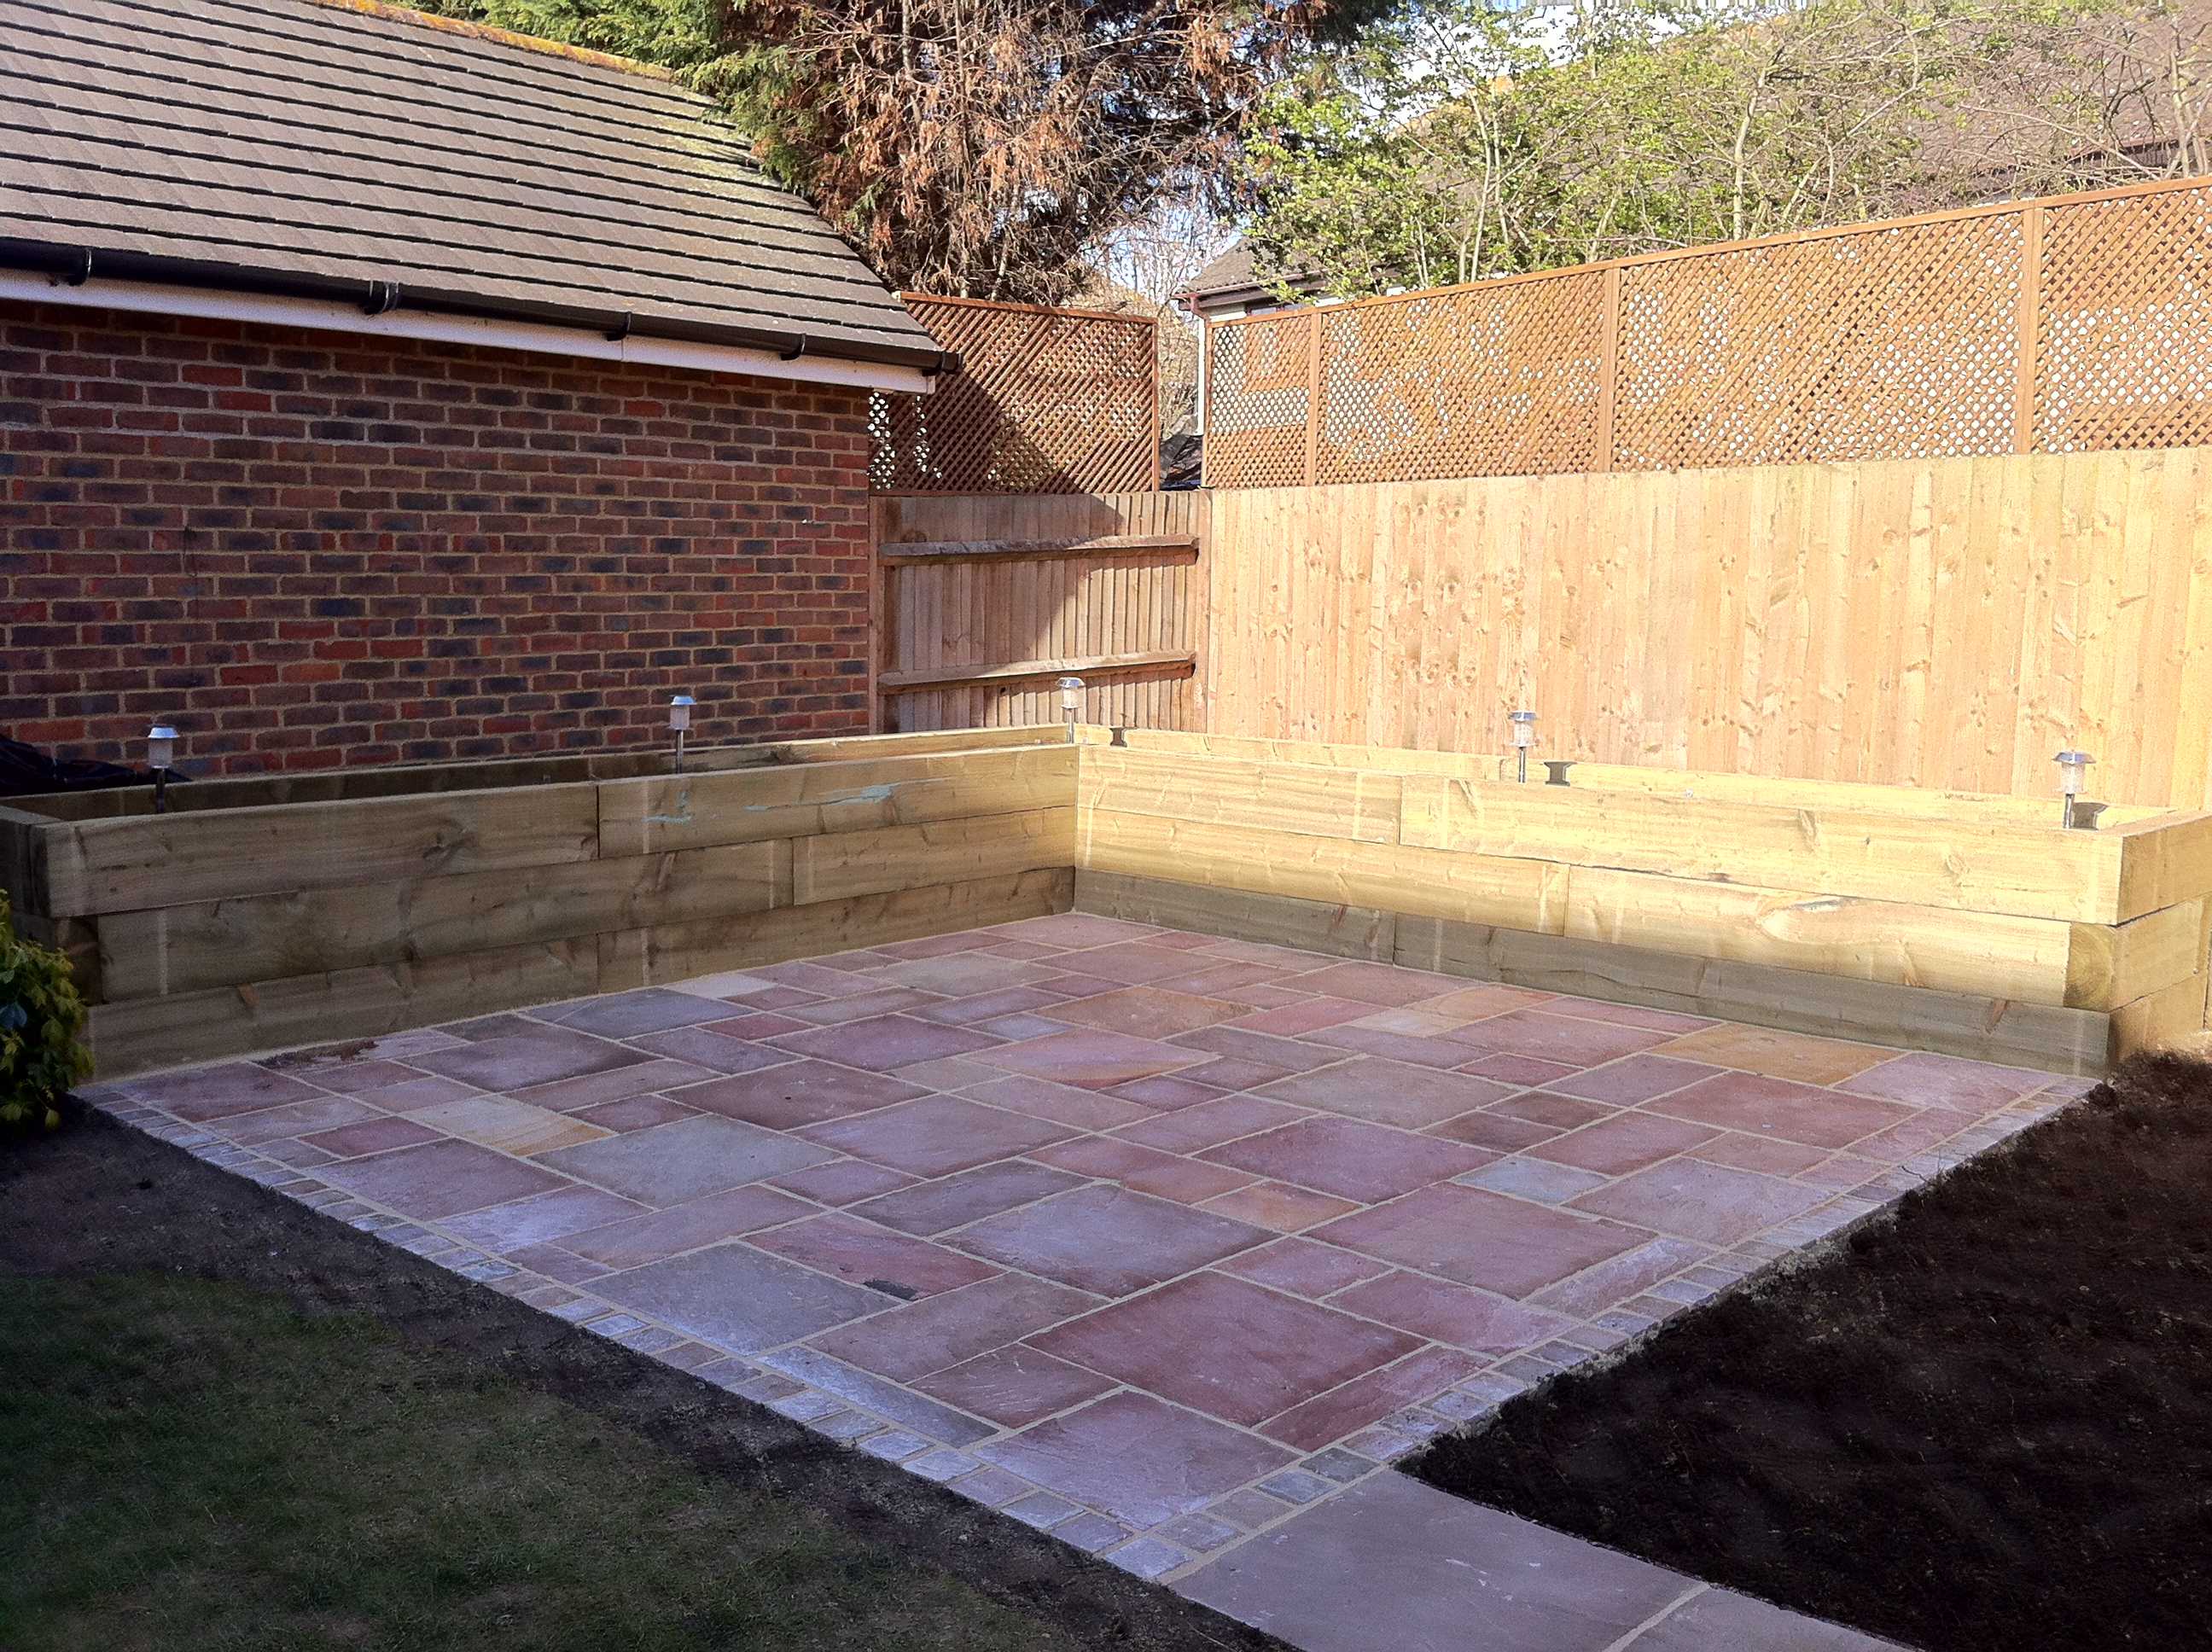 Raised sleeper bed, Sandstone patio